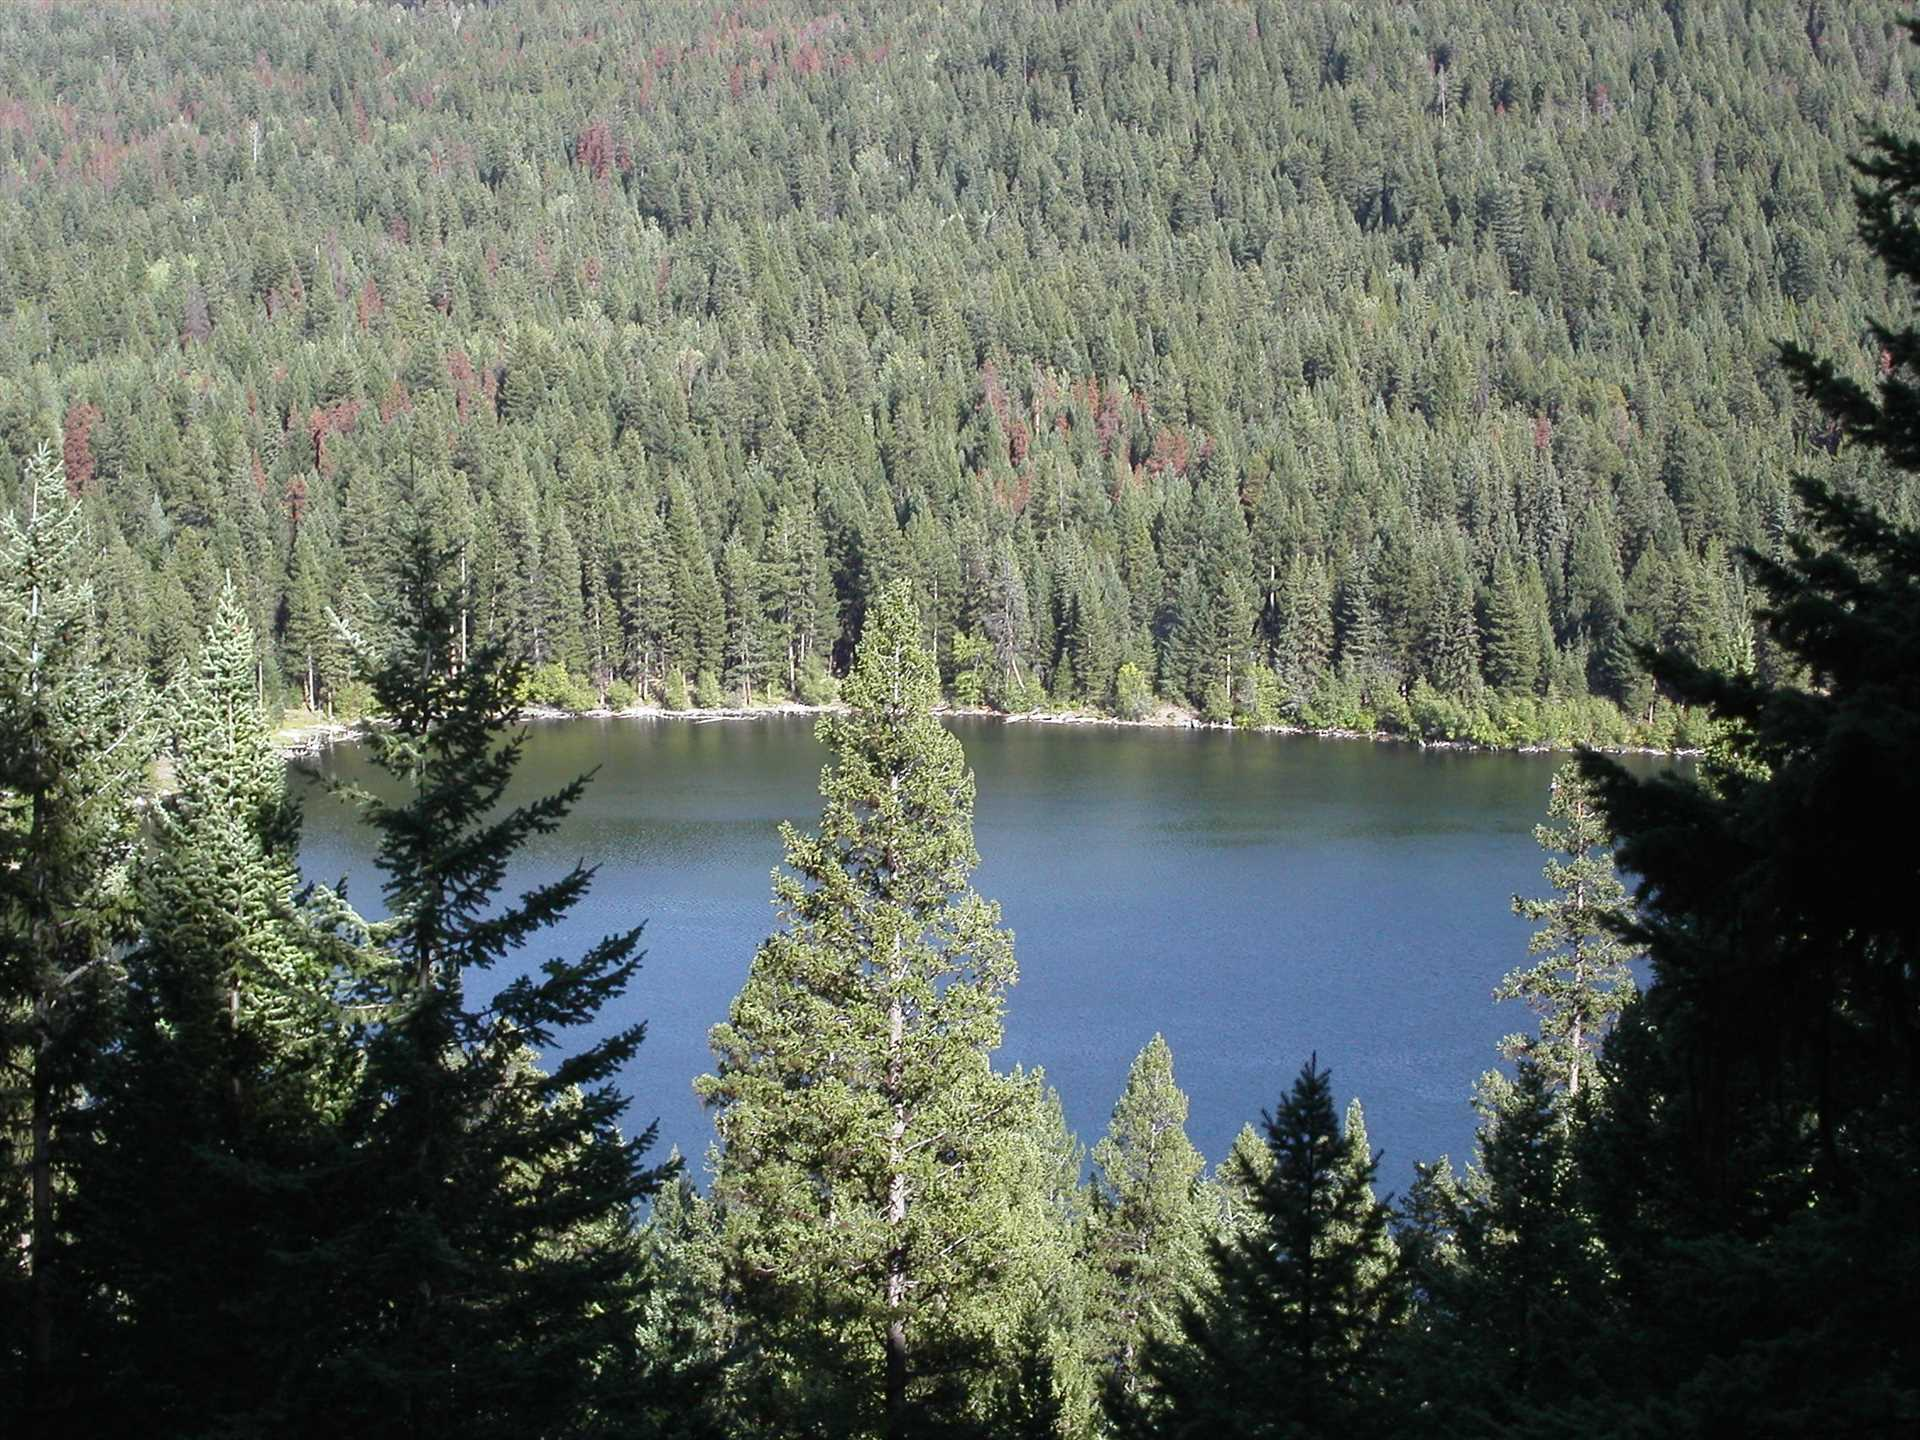 Natural Lakes & Forests